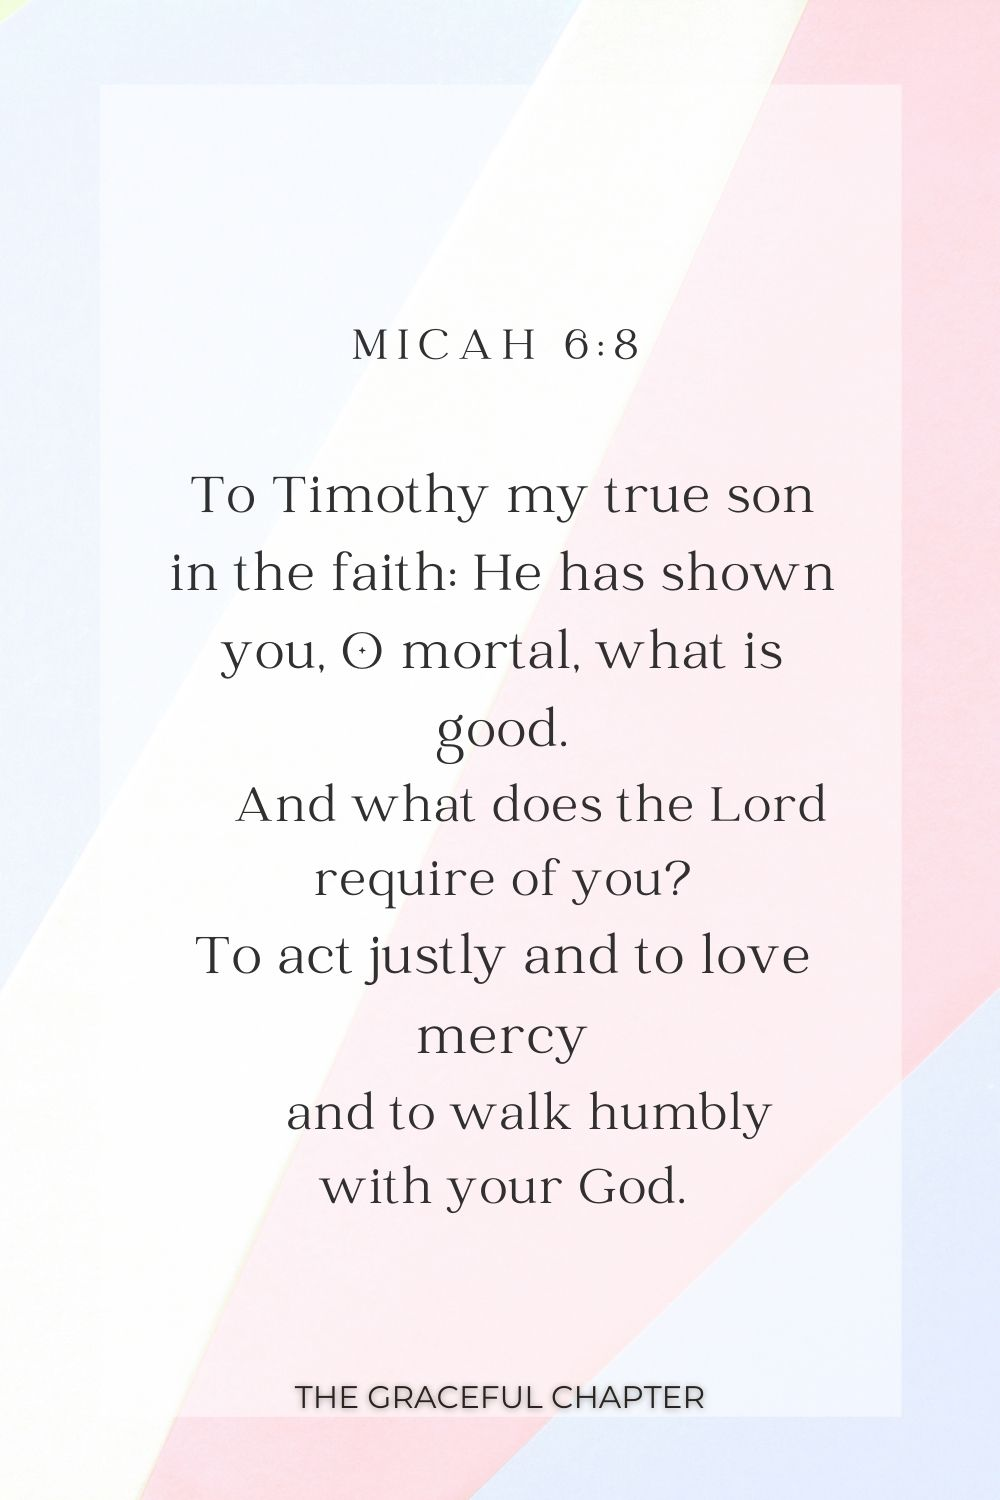 To Timothy my true son in the faith: He has shown you, O mortal, what is good.     And what does the Lord require of you? To act justly and to love mercy     and to walk humbly with your God. Micah 6:8